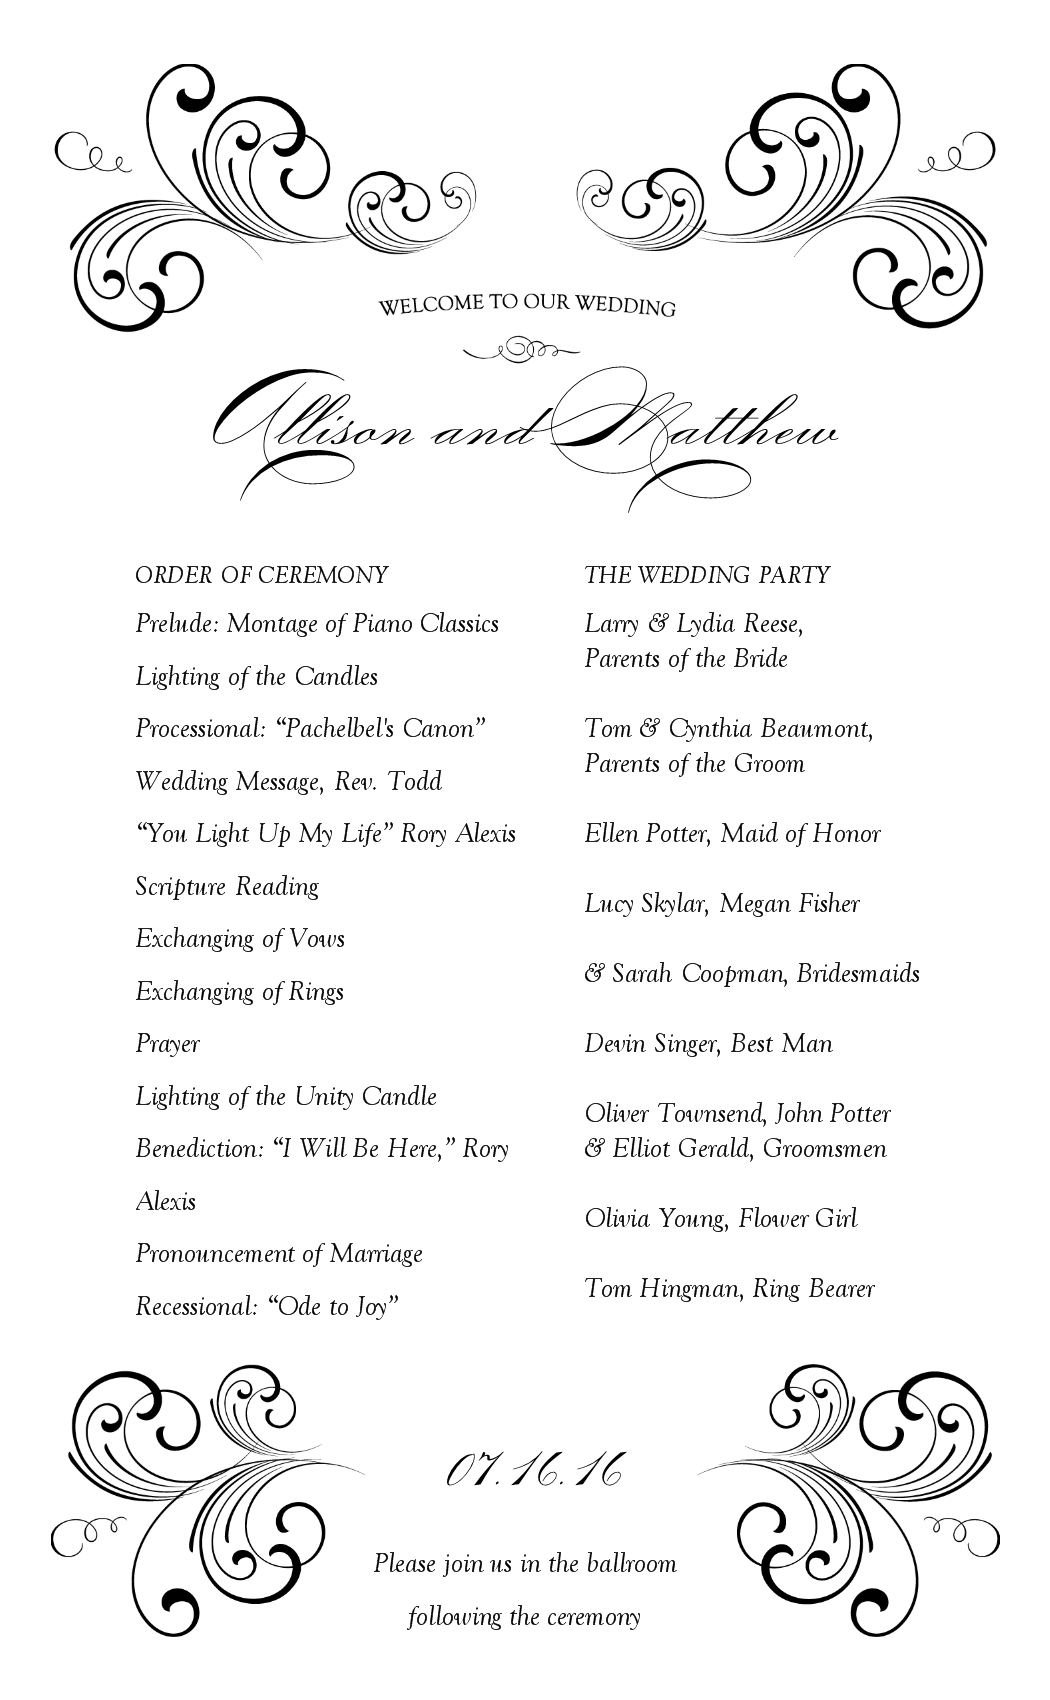 Sample Wedding Programme At The Reception Weddinginvitationsbiz